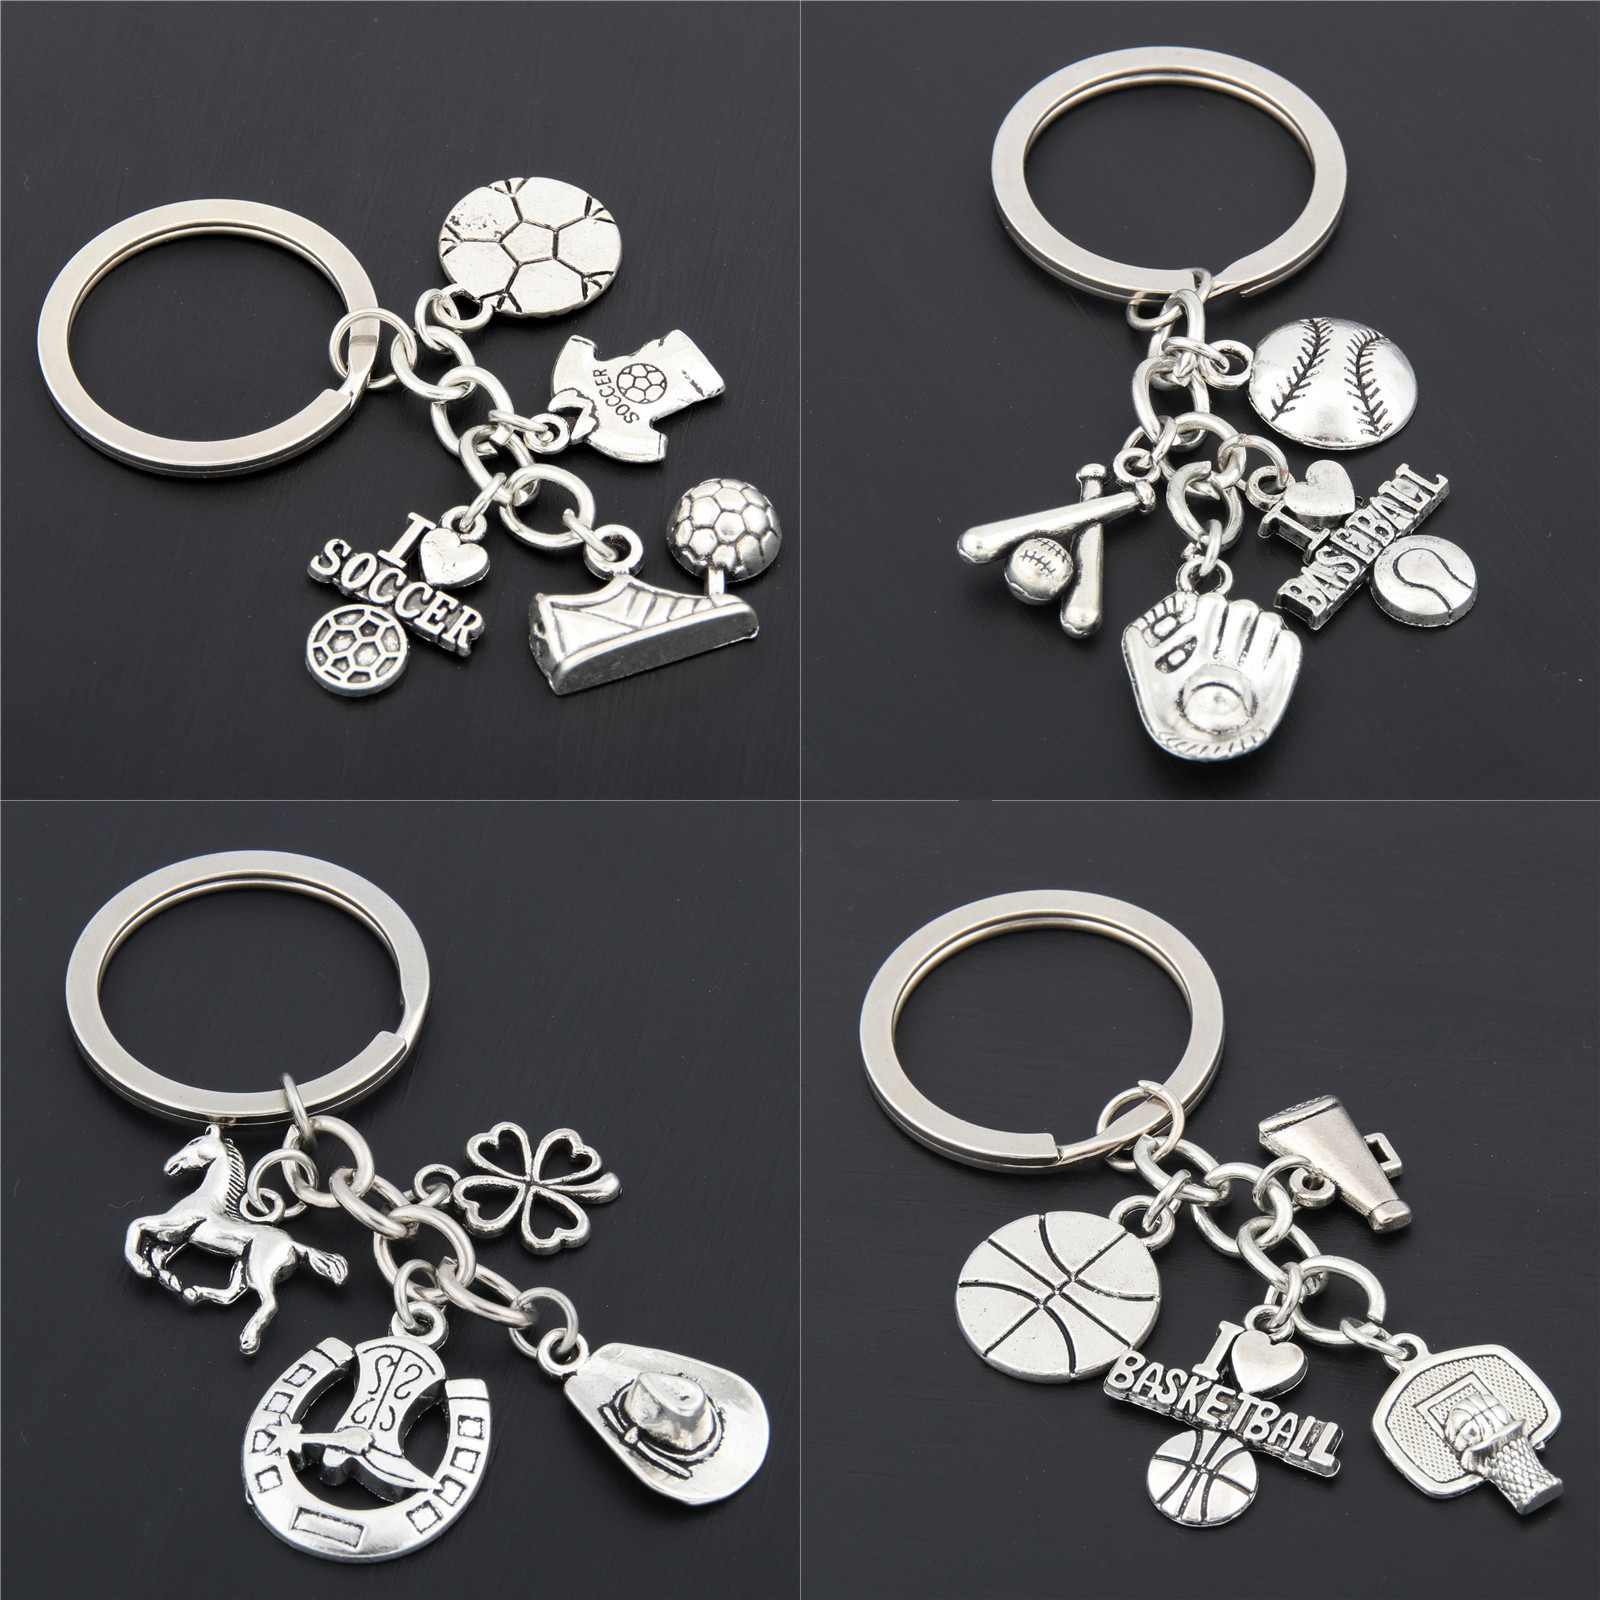 1PC I Love Football/Basketball/Baseball With Soccer Shoes Keychains Silver For Car Purse Bag Cowboy Gift Clover Charms Keyrings